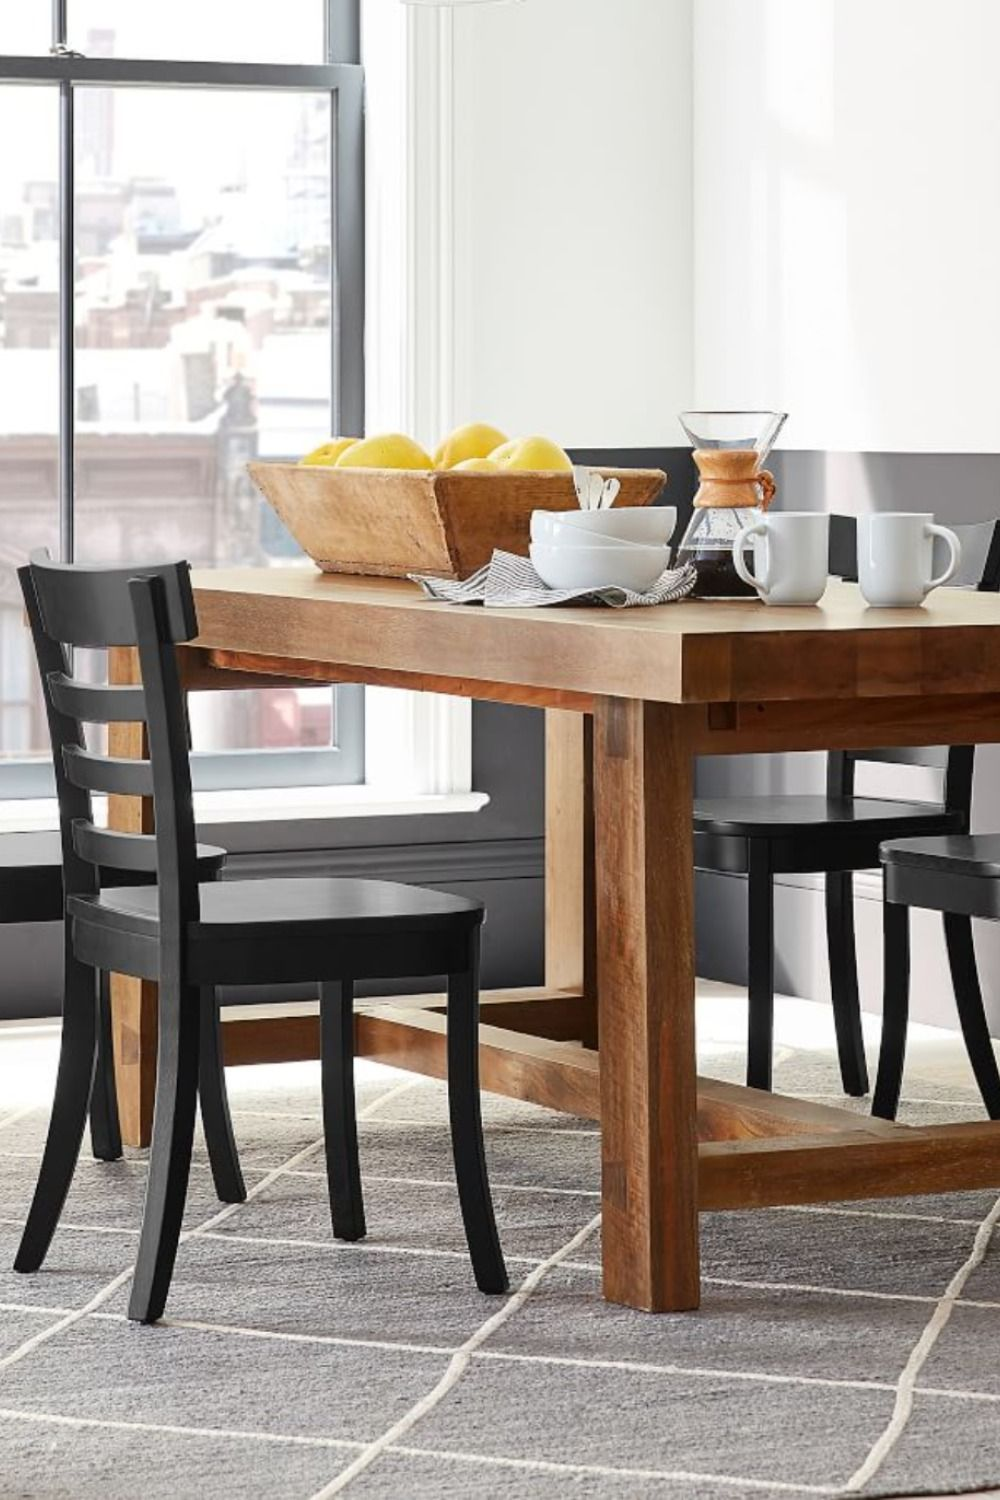 Small Spaces Image By Pottery Barn In 2020 Furniture For Small